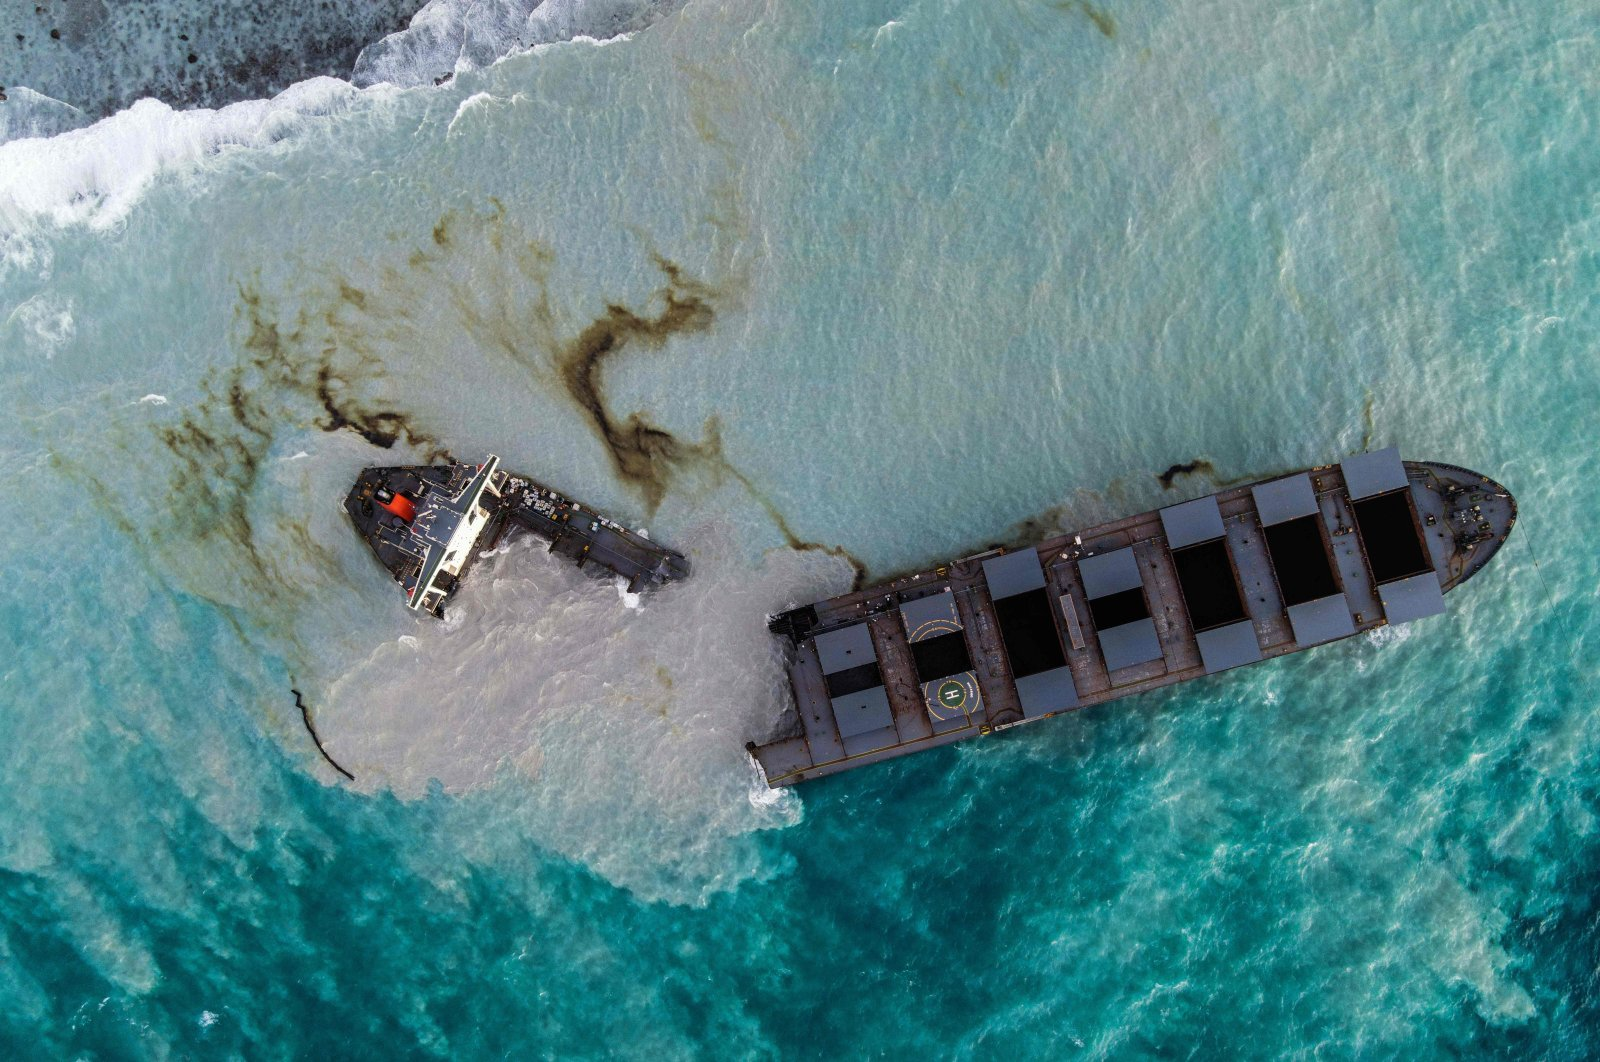 The MV Wakashio bulk carrier that had run aground and broke into two parts near Blue Bay Marine Park, Mauritius, Aug. 16, 2020. (AFP Photo)